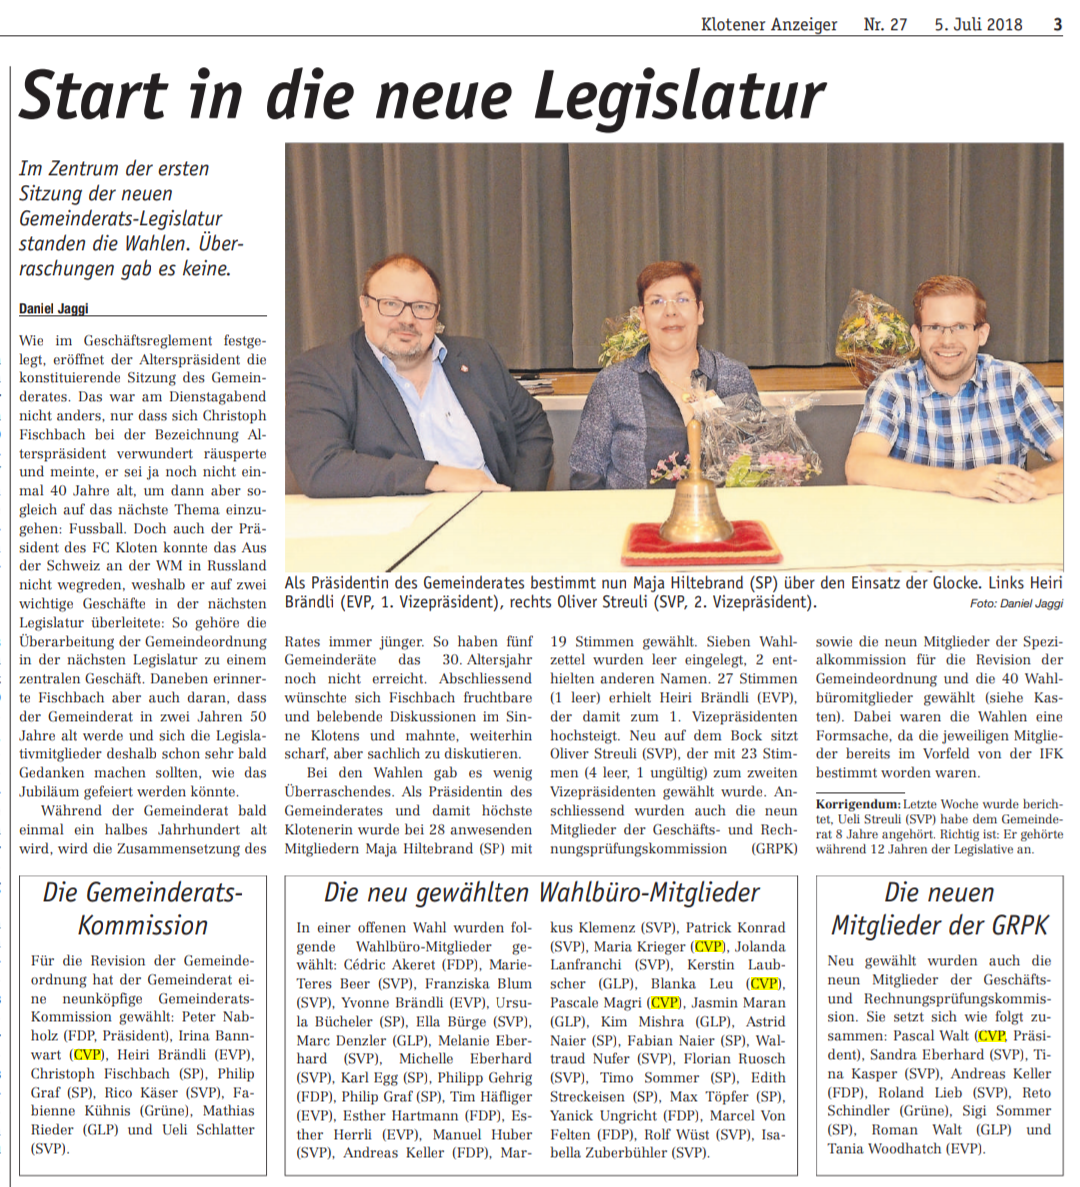 20180703-Start in die neue Legislatur